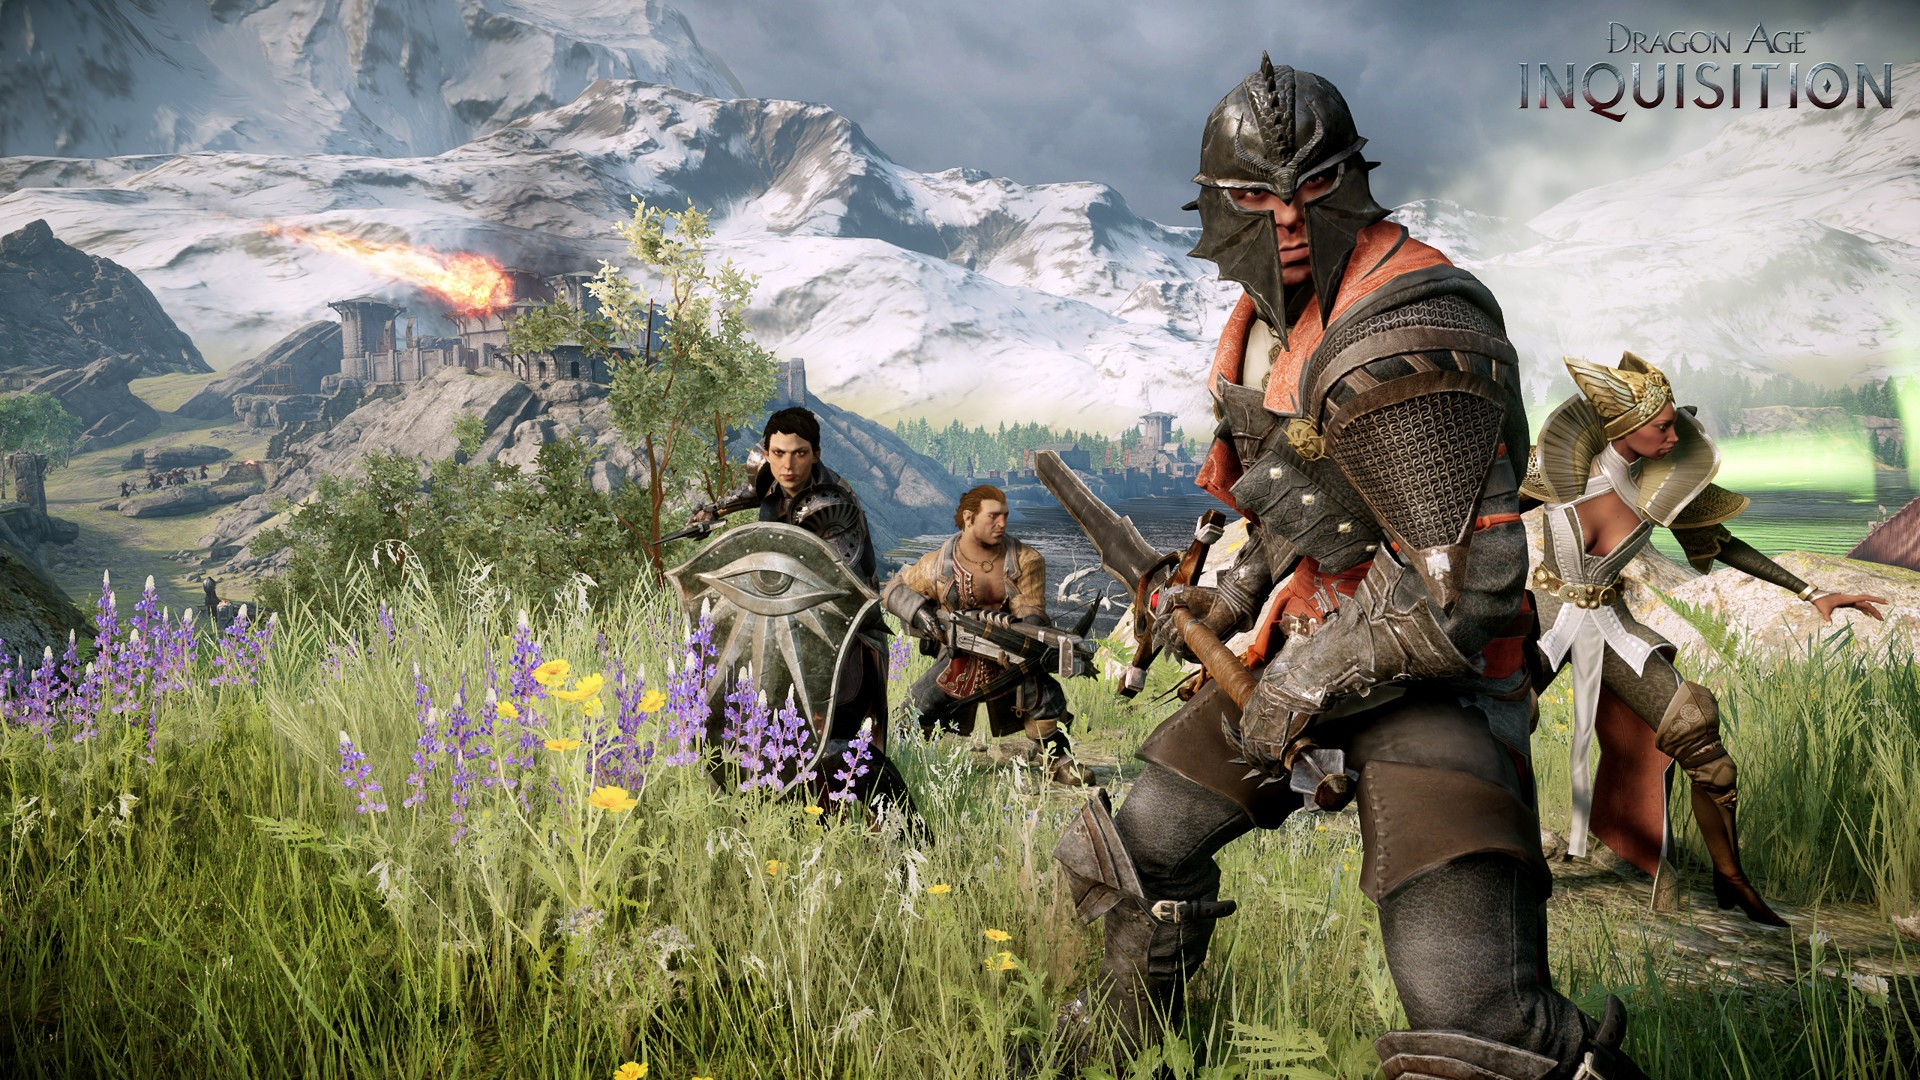 Dragon Age Inquisition Wallpapers Video Game Hq Dragon Age